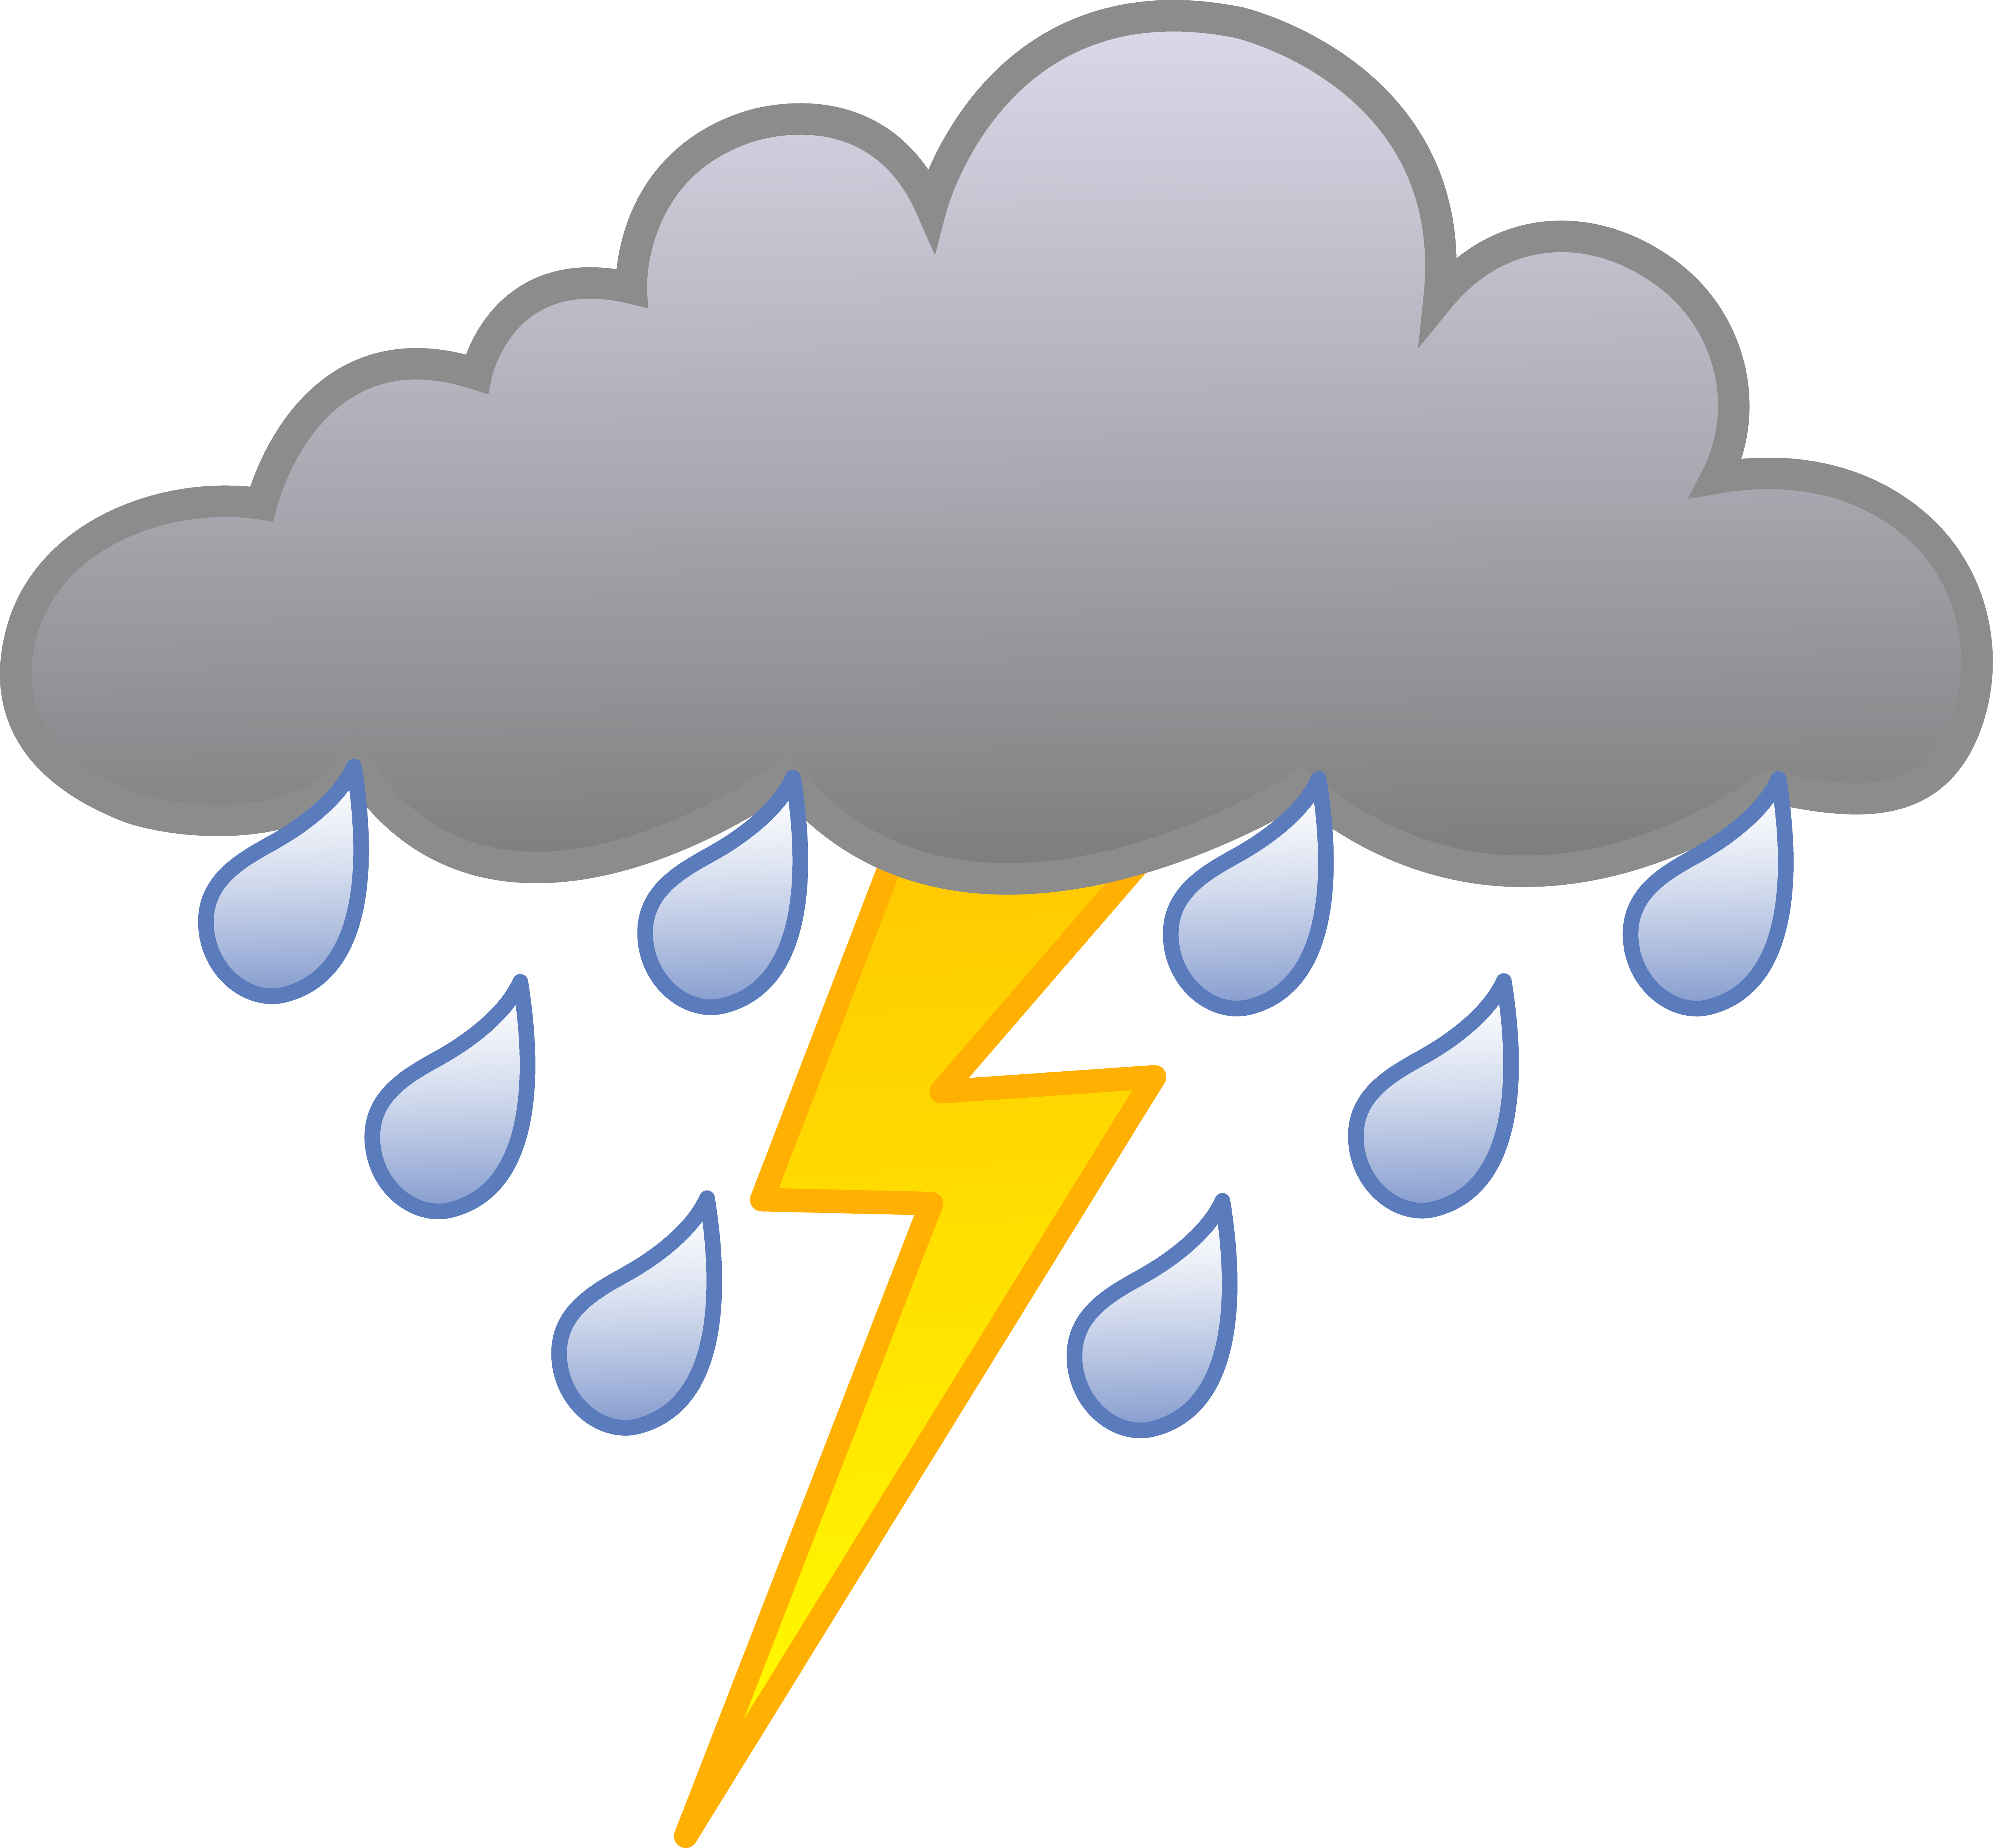 Storm clipart #3, Download drawings